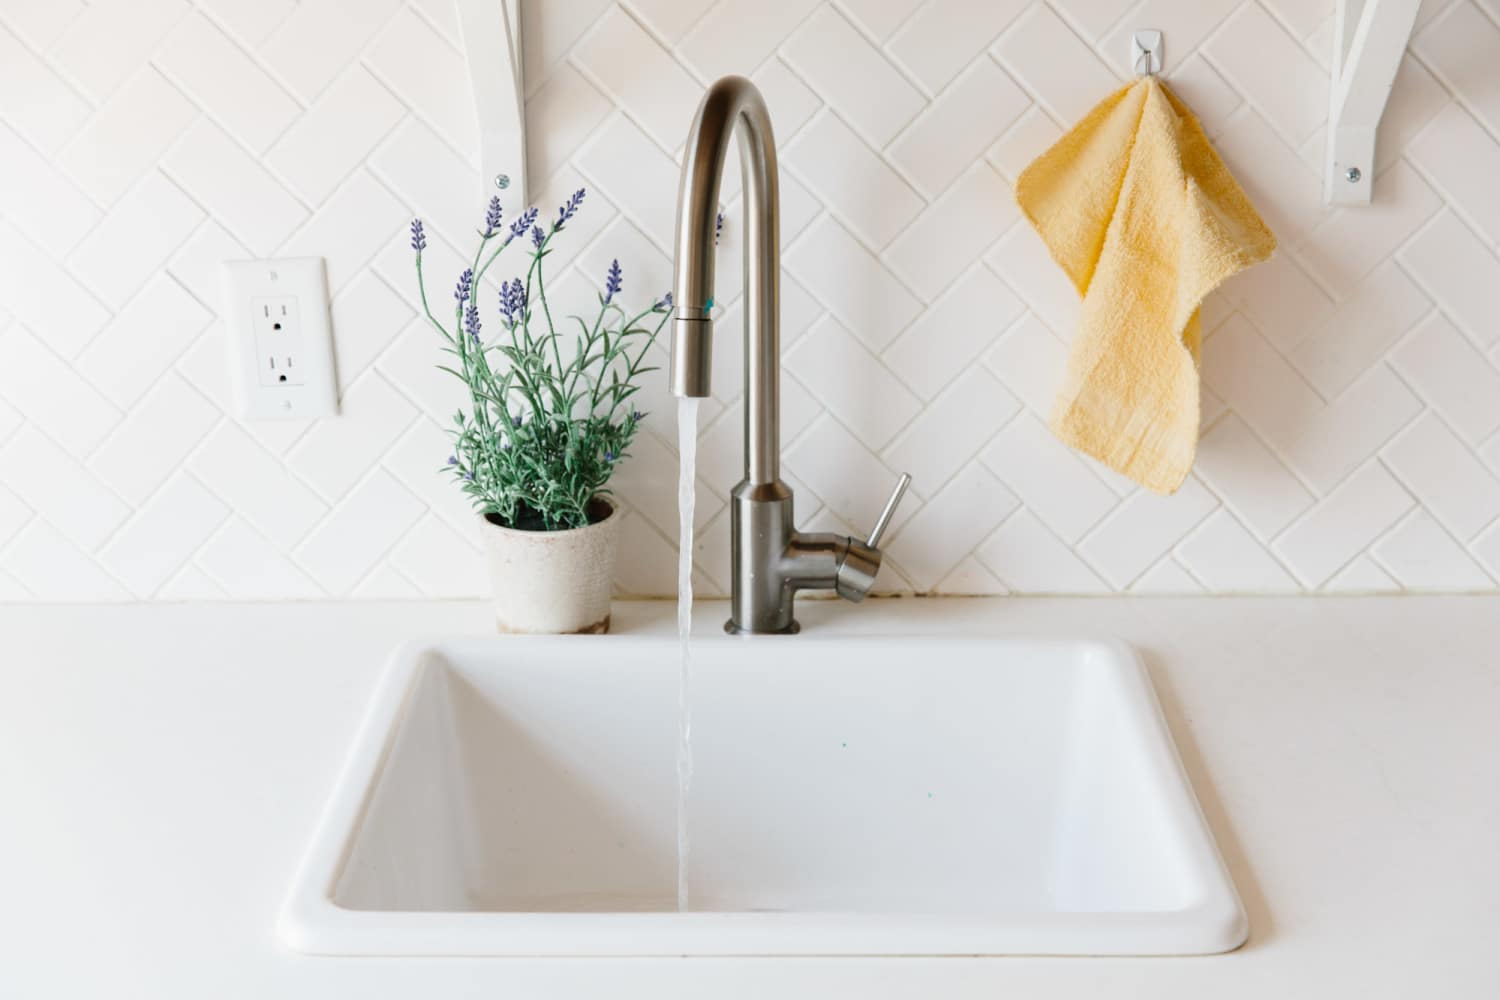 You Should Know How to Make Your Own Drain Cleaner